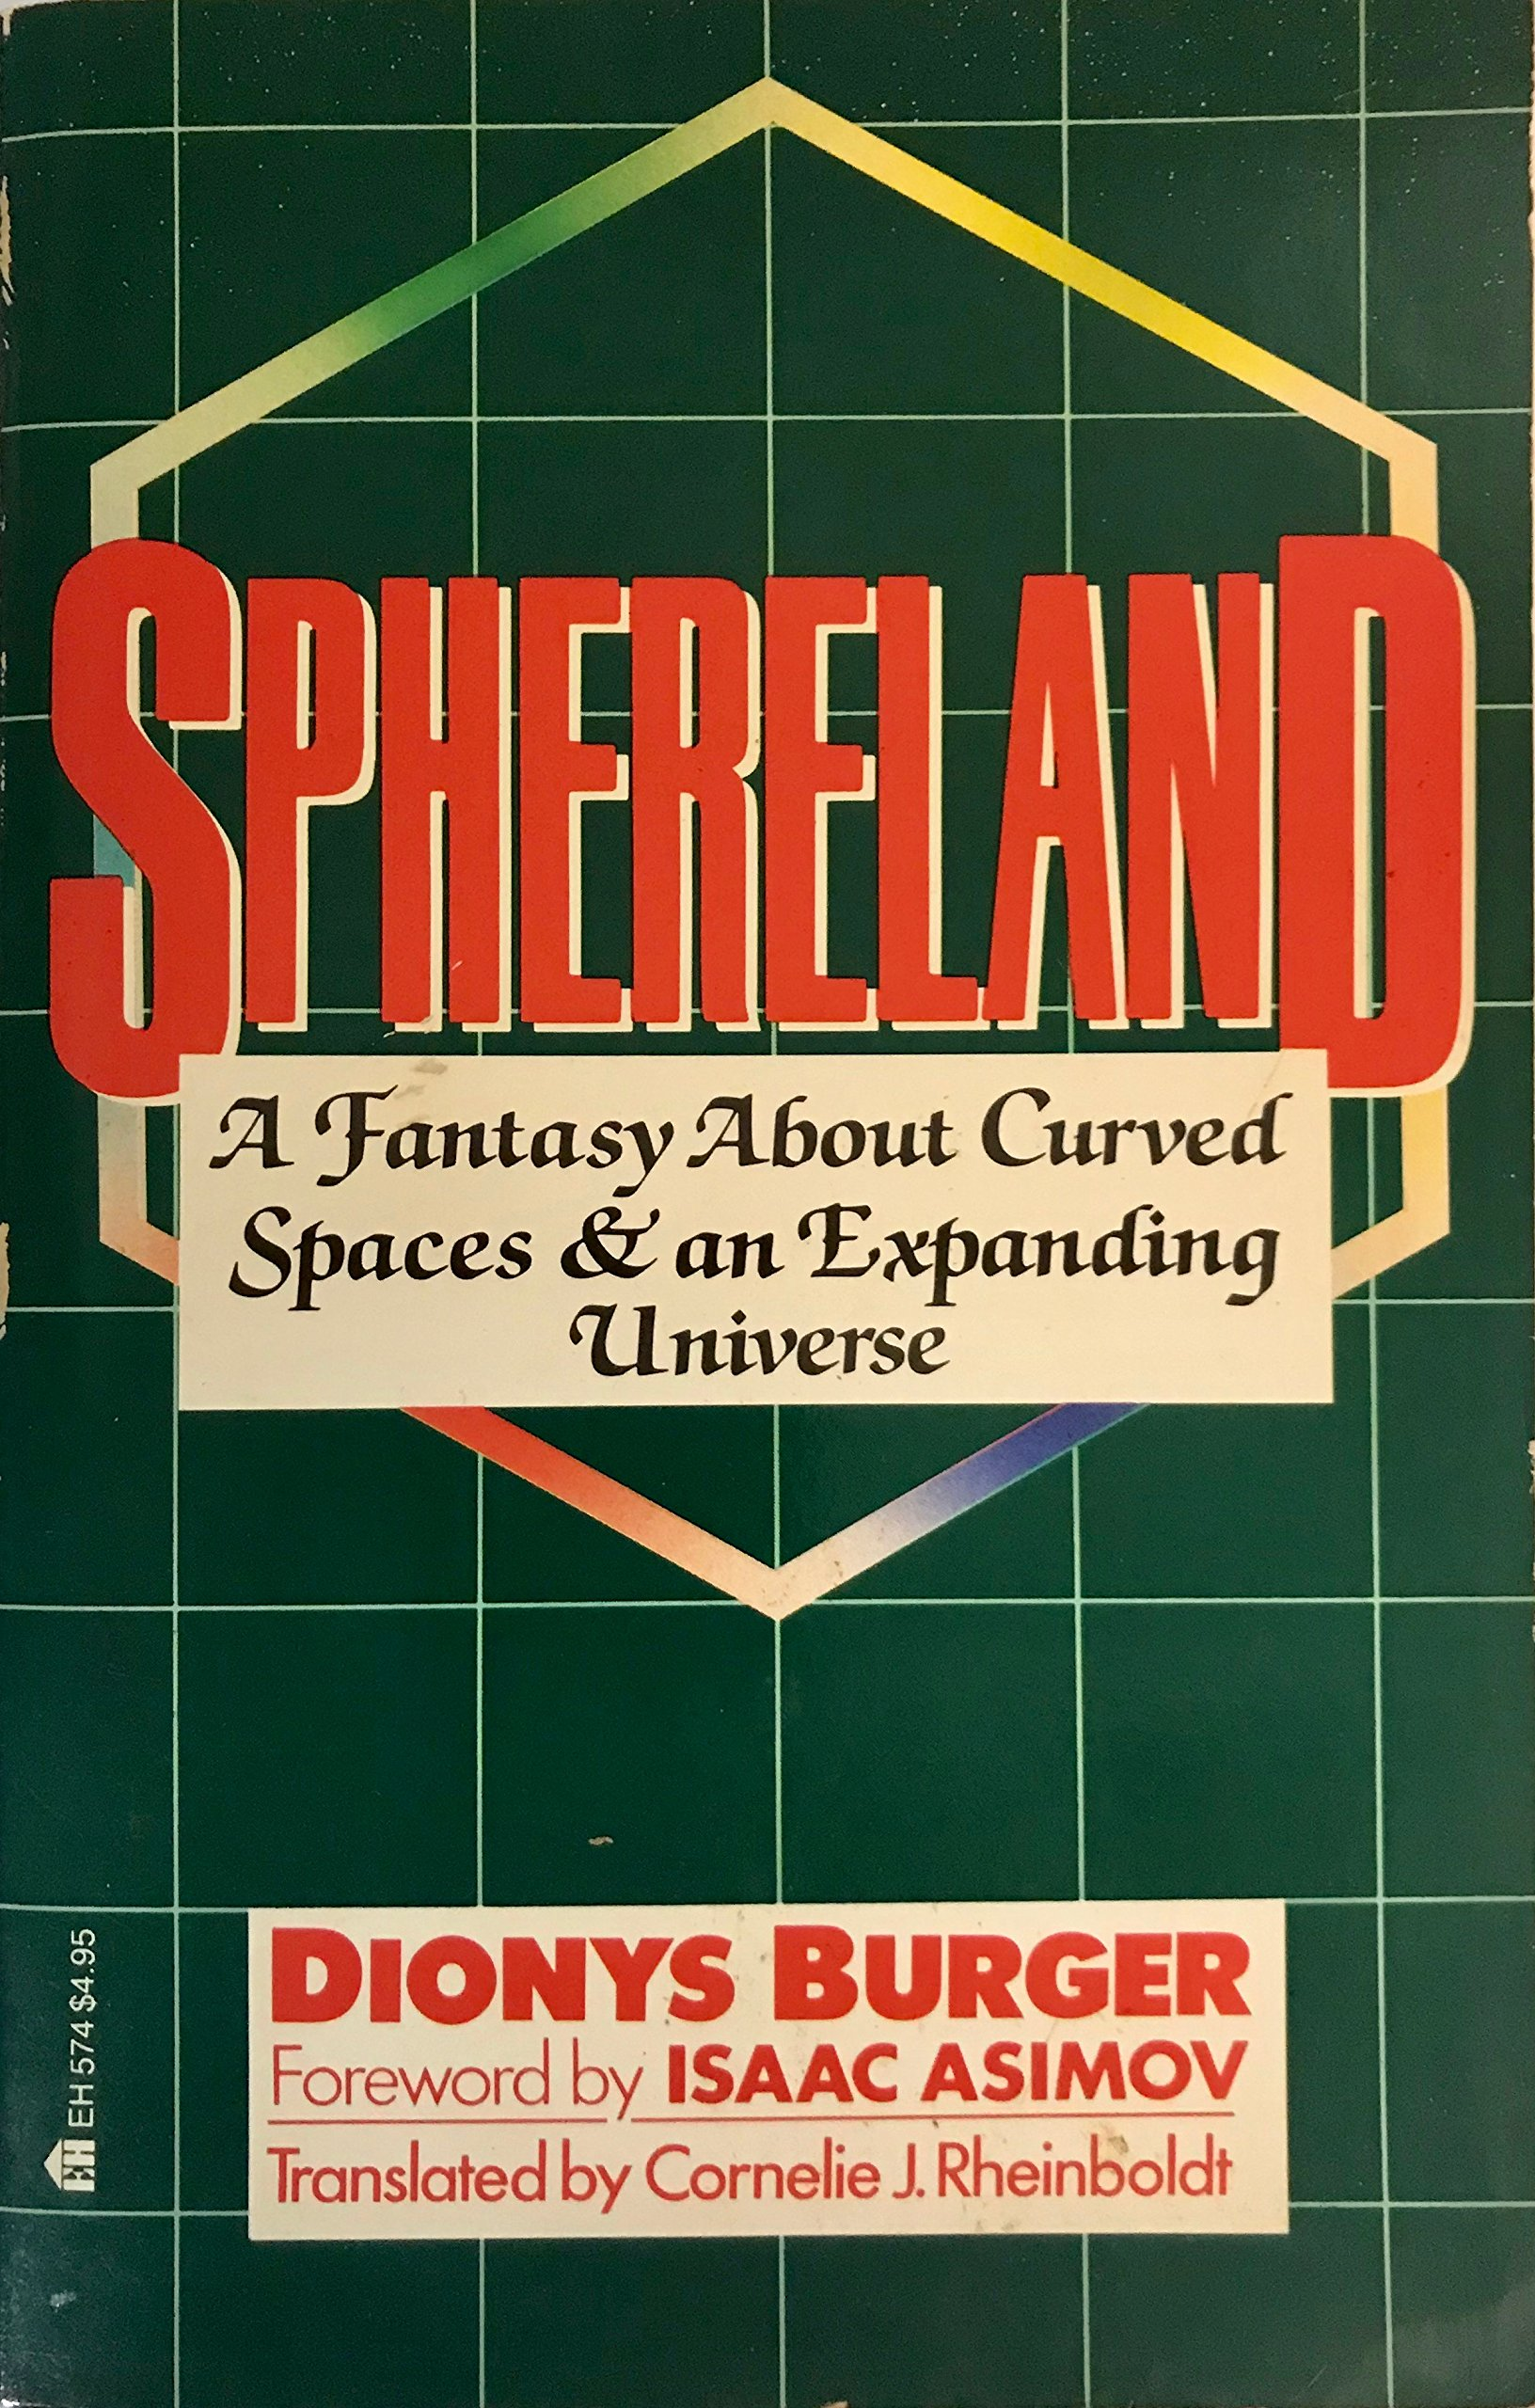 Sphereland: A Fantasy About Curved Spaces and an Expanding Universe (English and Dutch Edition), Dionys Burger